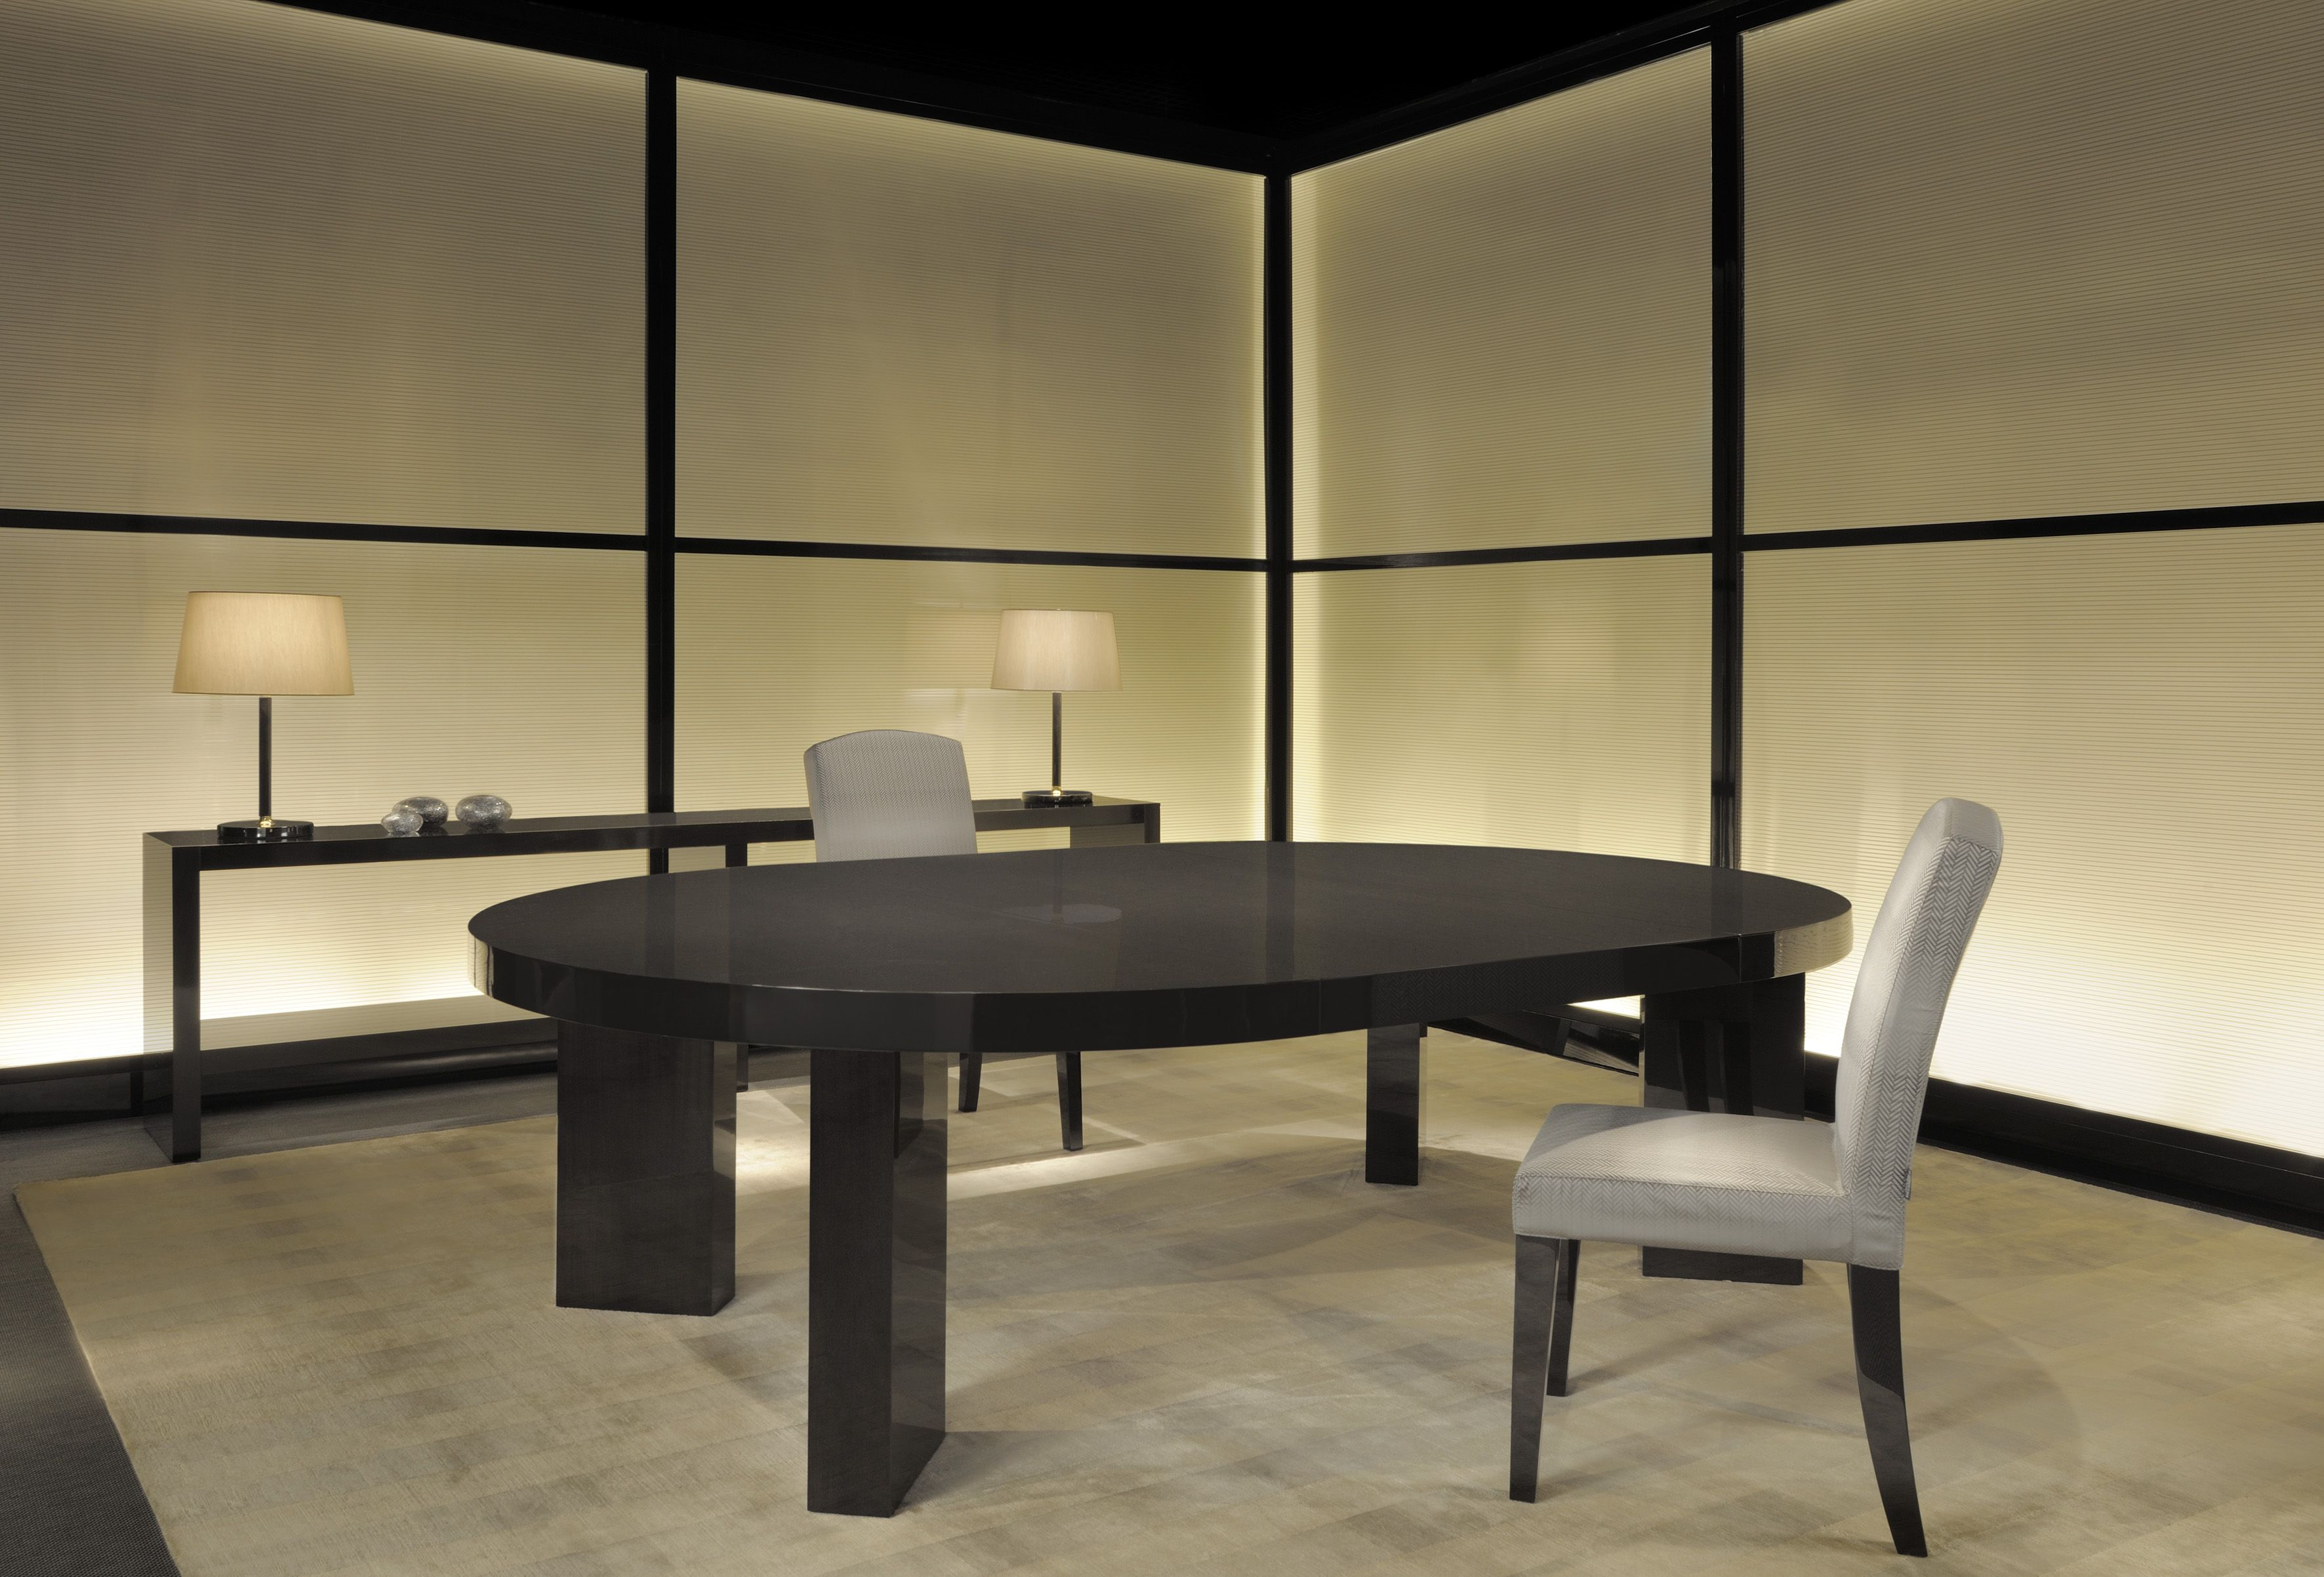 Explore Armani Store, Dining Tables, And More!